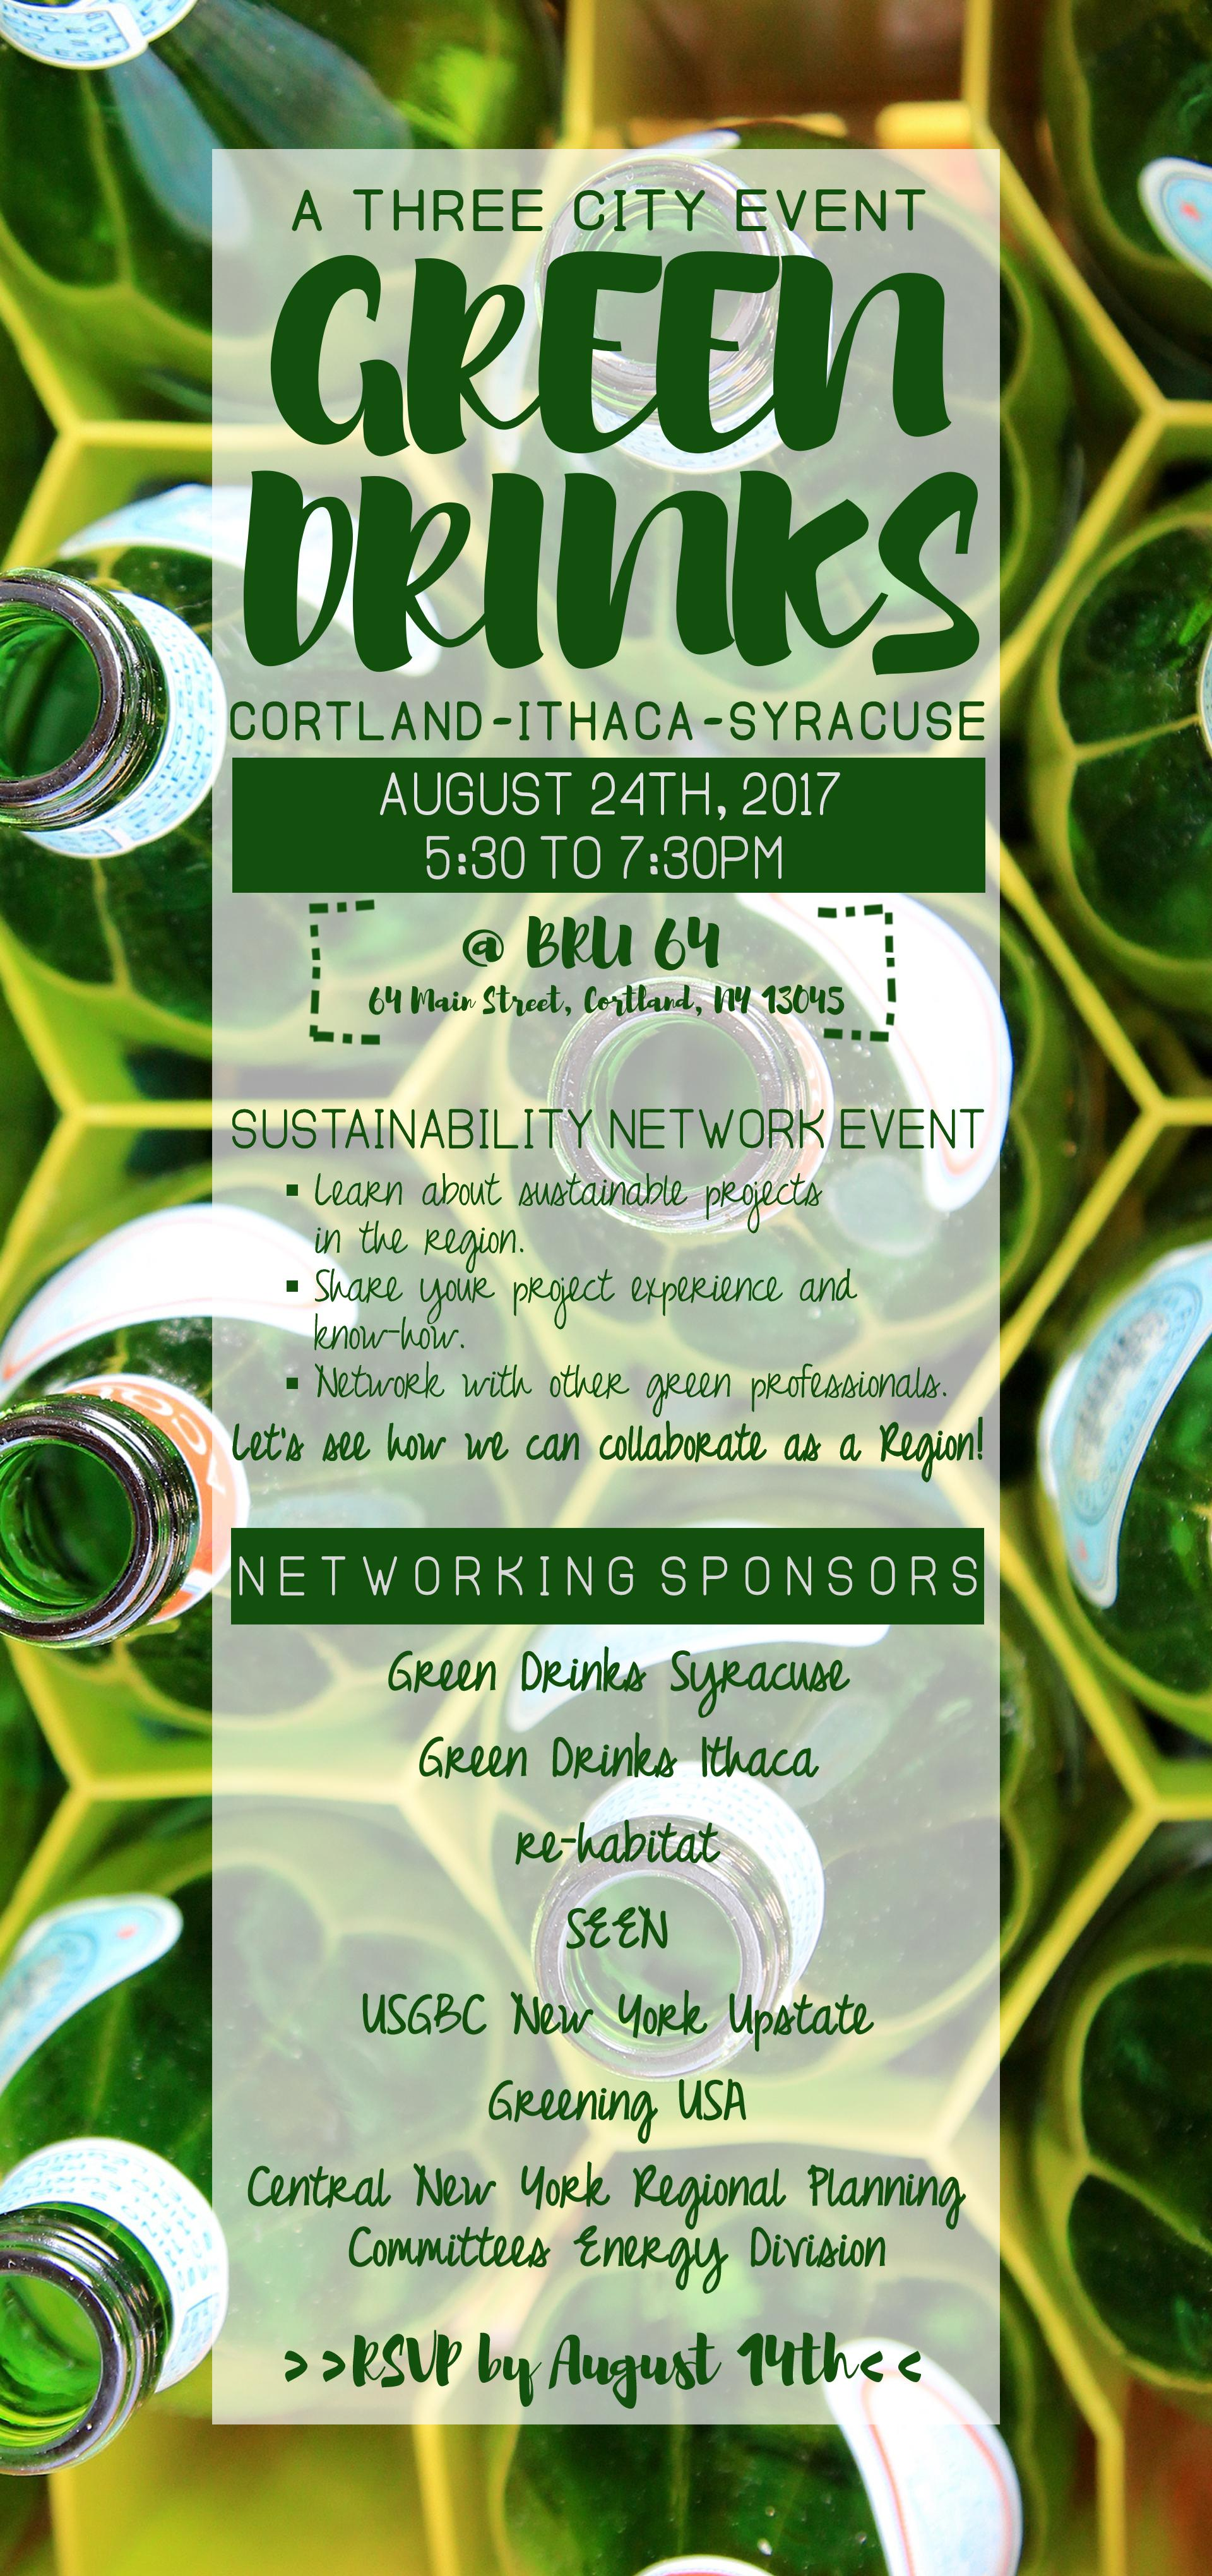 Three City Green Drinks Networking Event